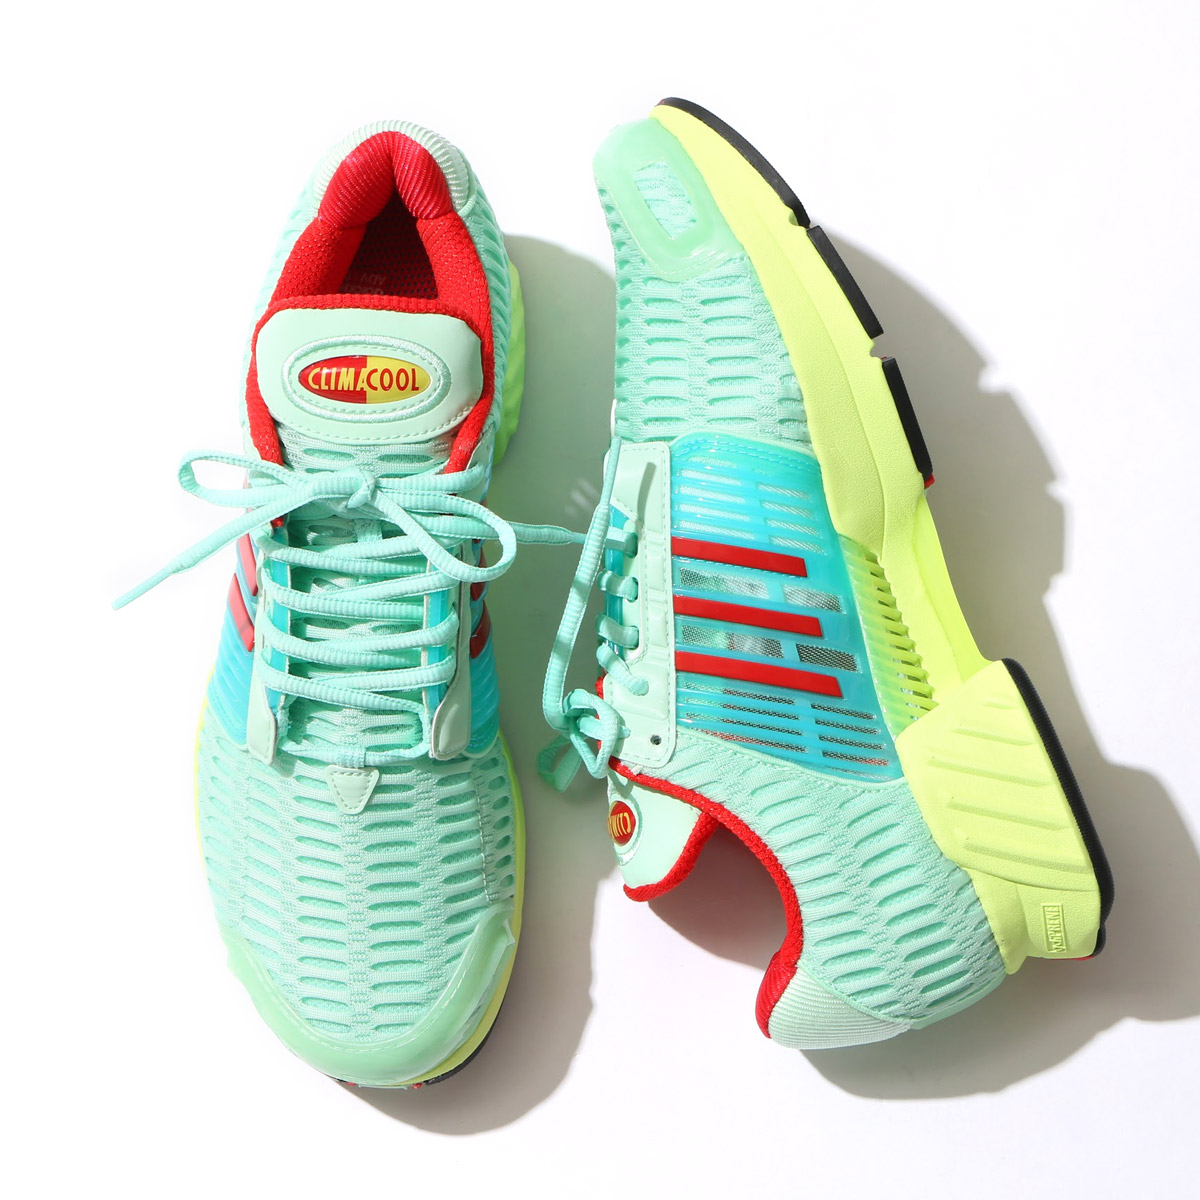 adidas Originals CLIMACOOL 1(アディダス クライマクール 1)(Frozen Green/Semi Frozen Yellow/Core Red)【メンズ スニーカー】17SS-S